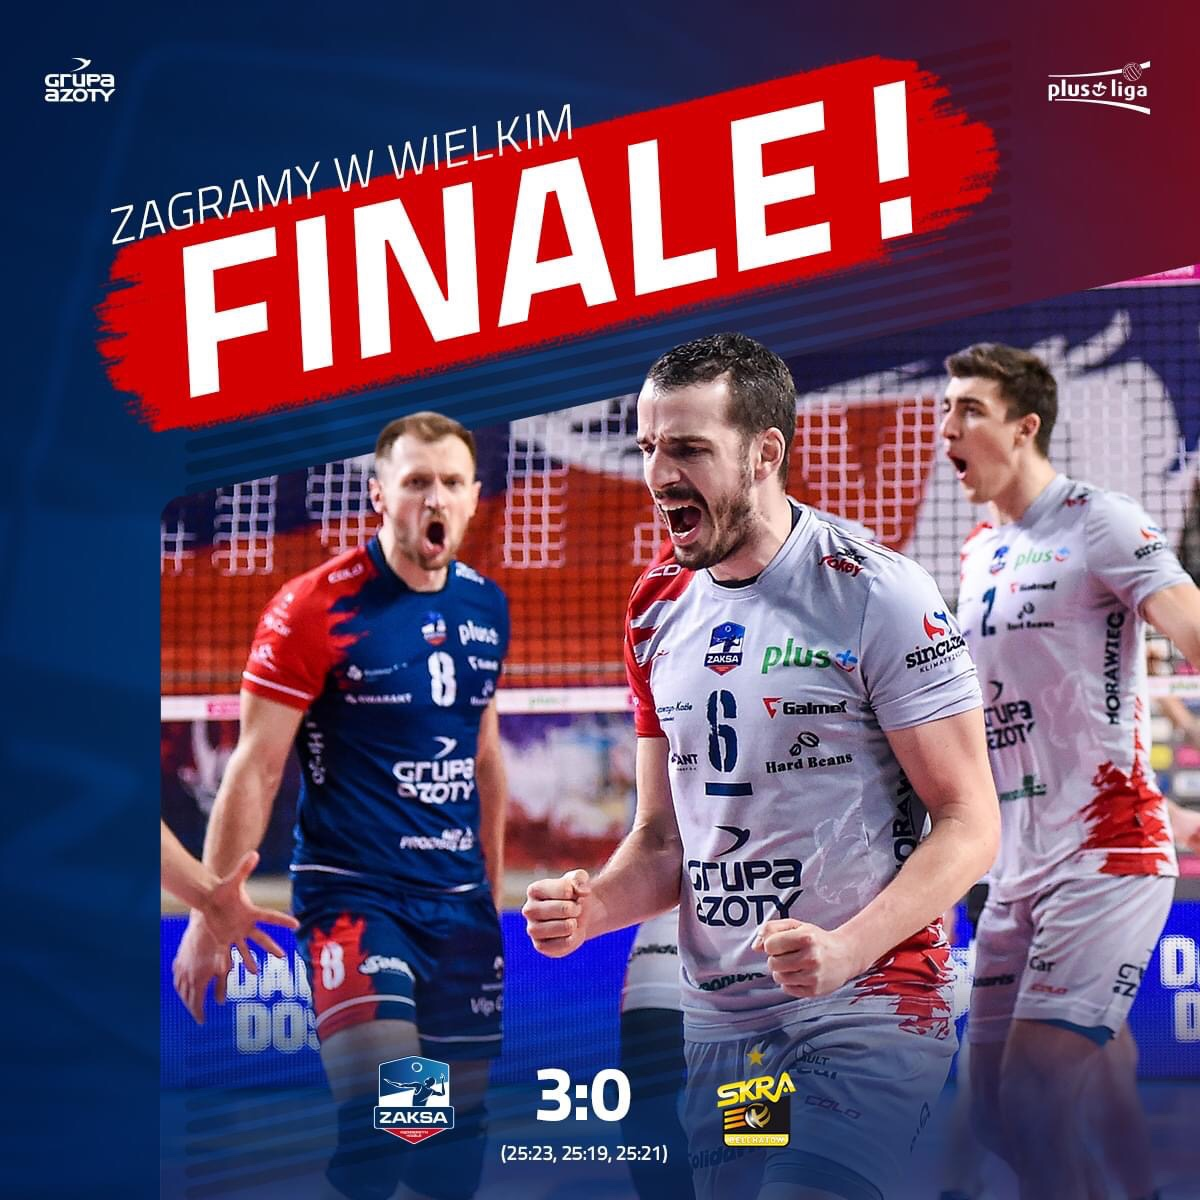 Poland: ZAKSA in final for 5th time in row!